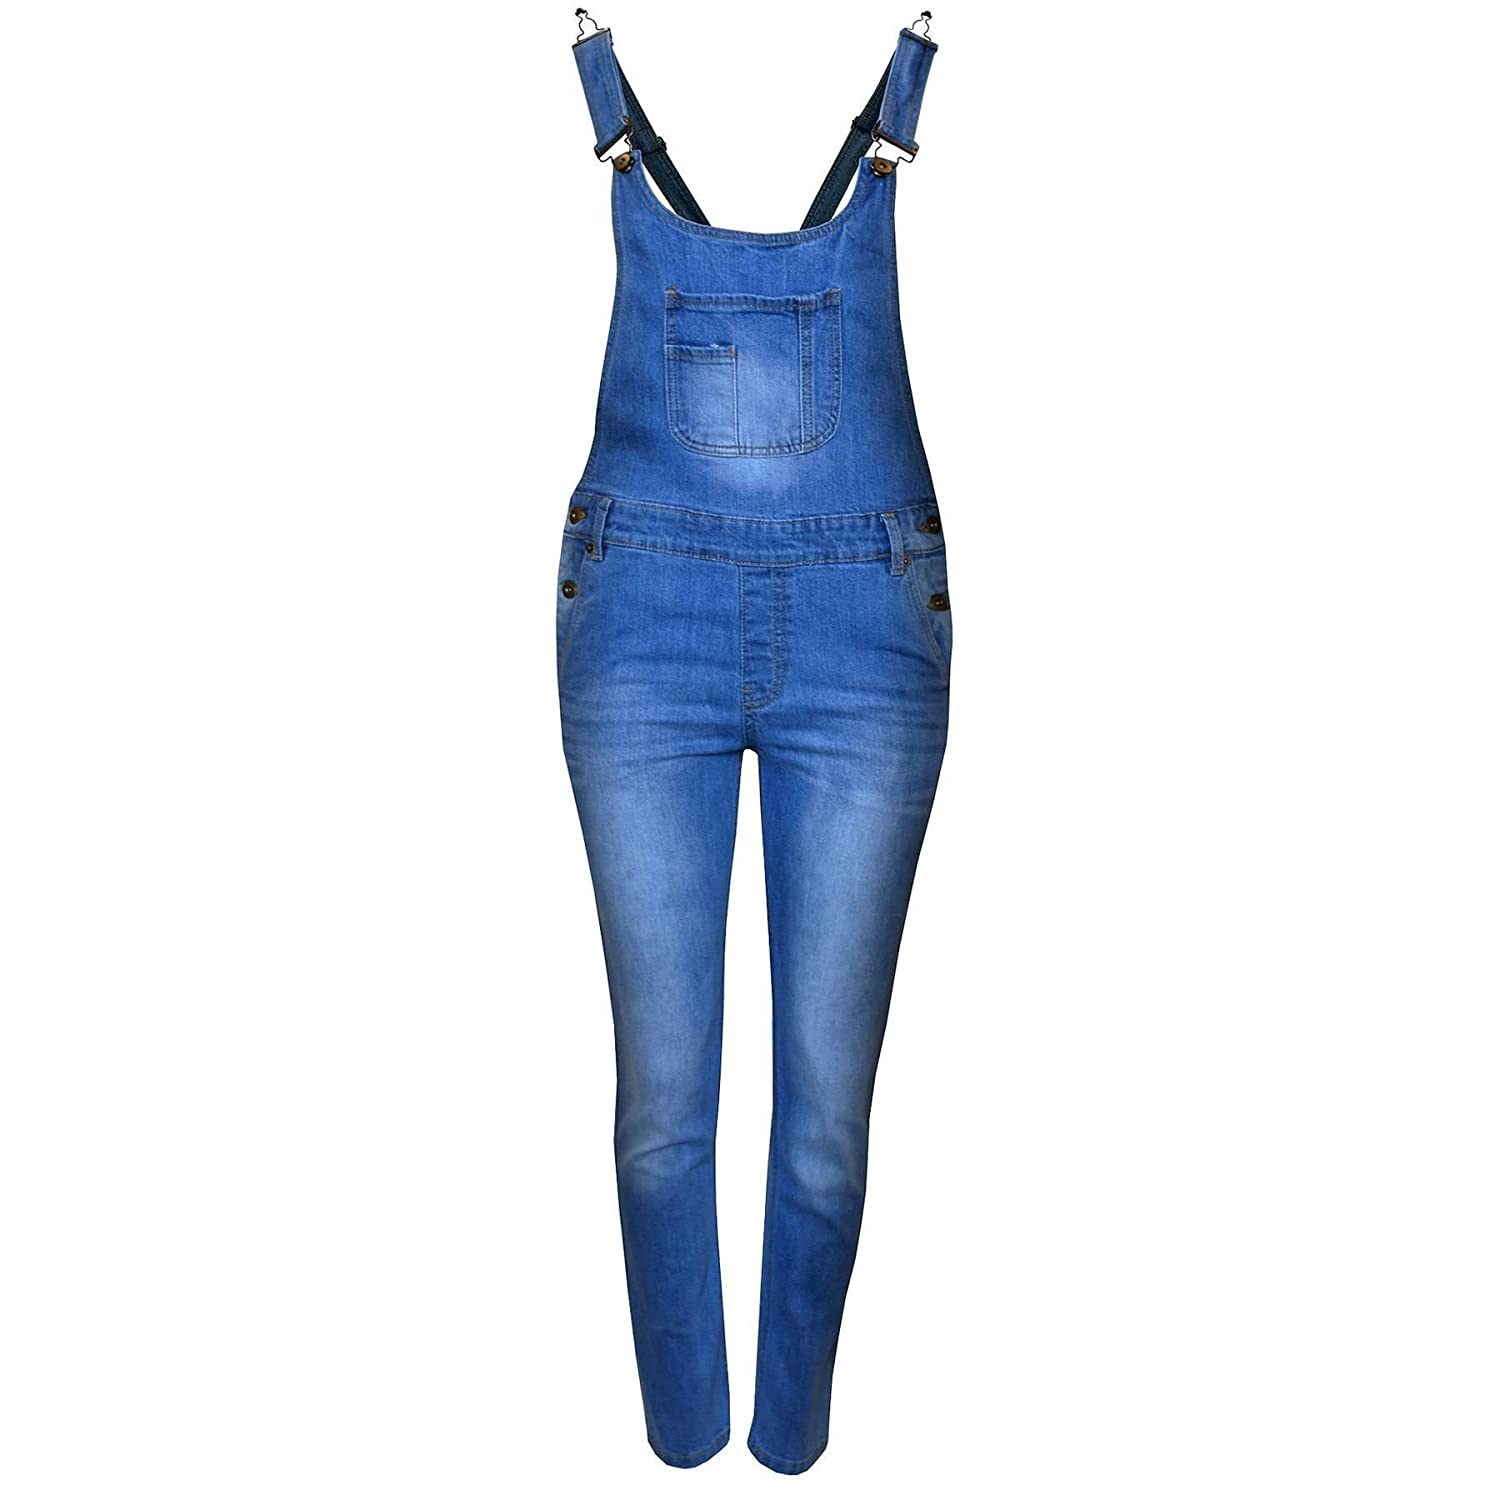 NEW KIDS GIRLS DENIM STRETCH STONE WASH DARK WASH PLAYSUIT JUMPSUIT DUNGAREE JEANS